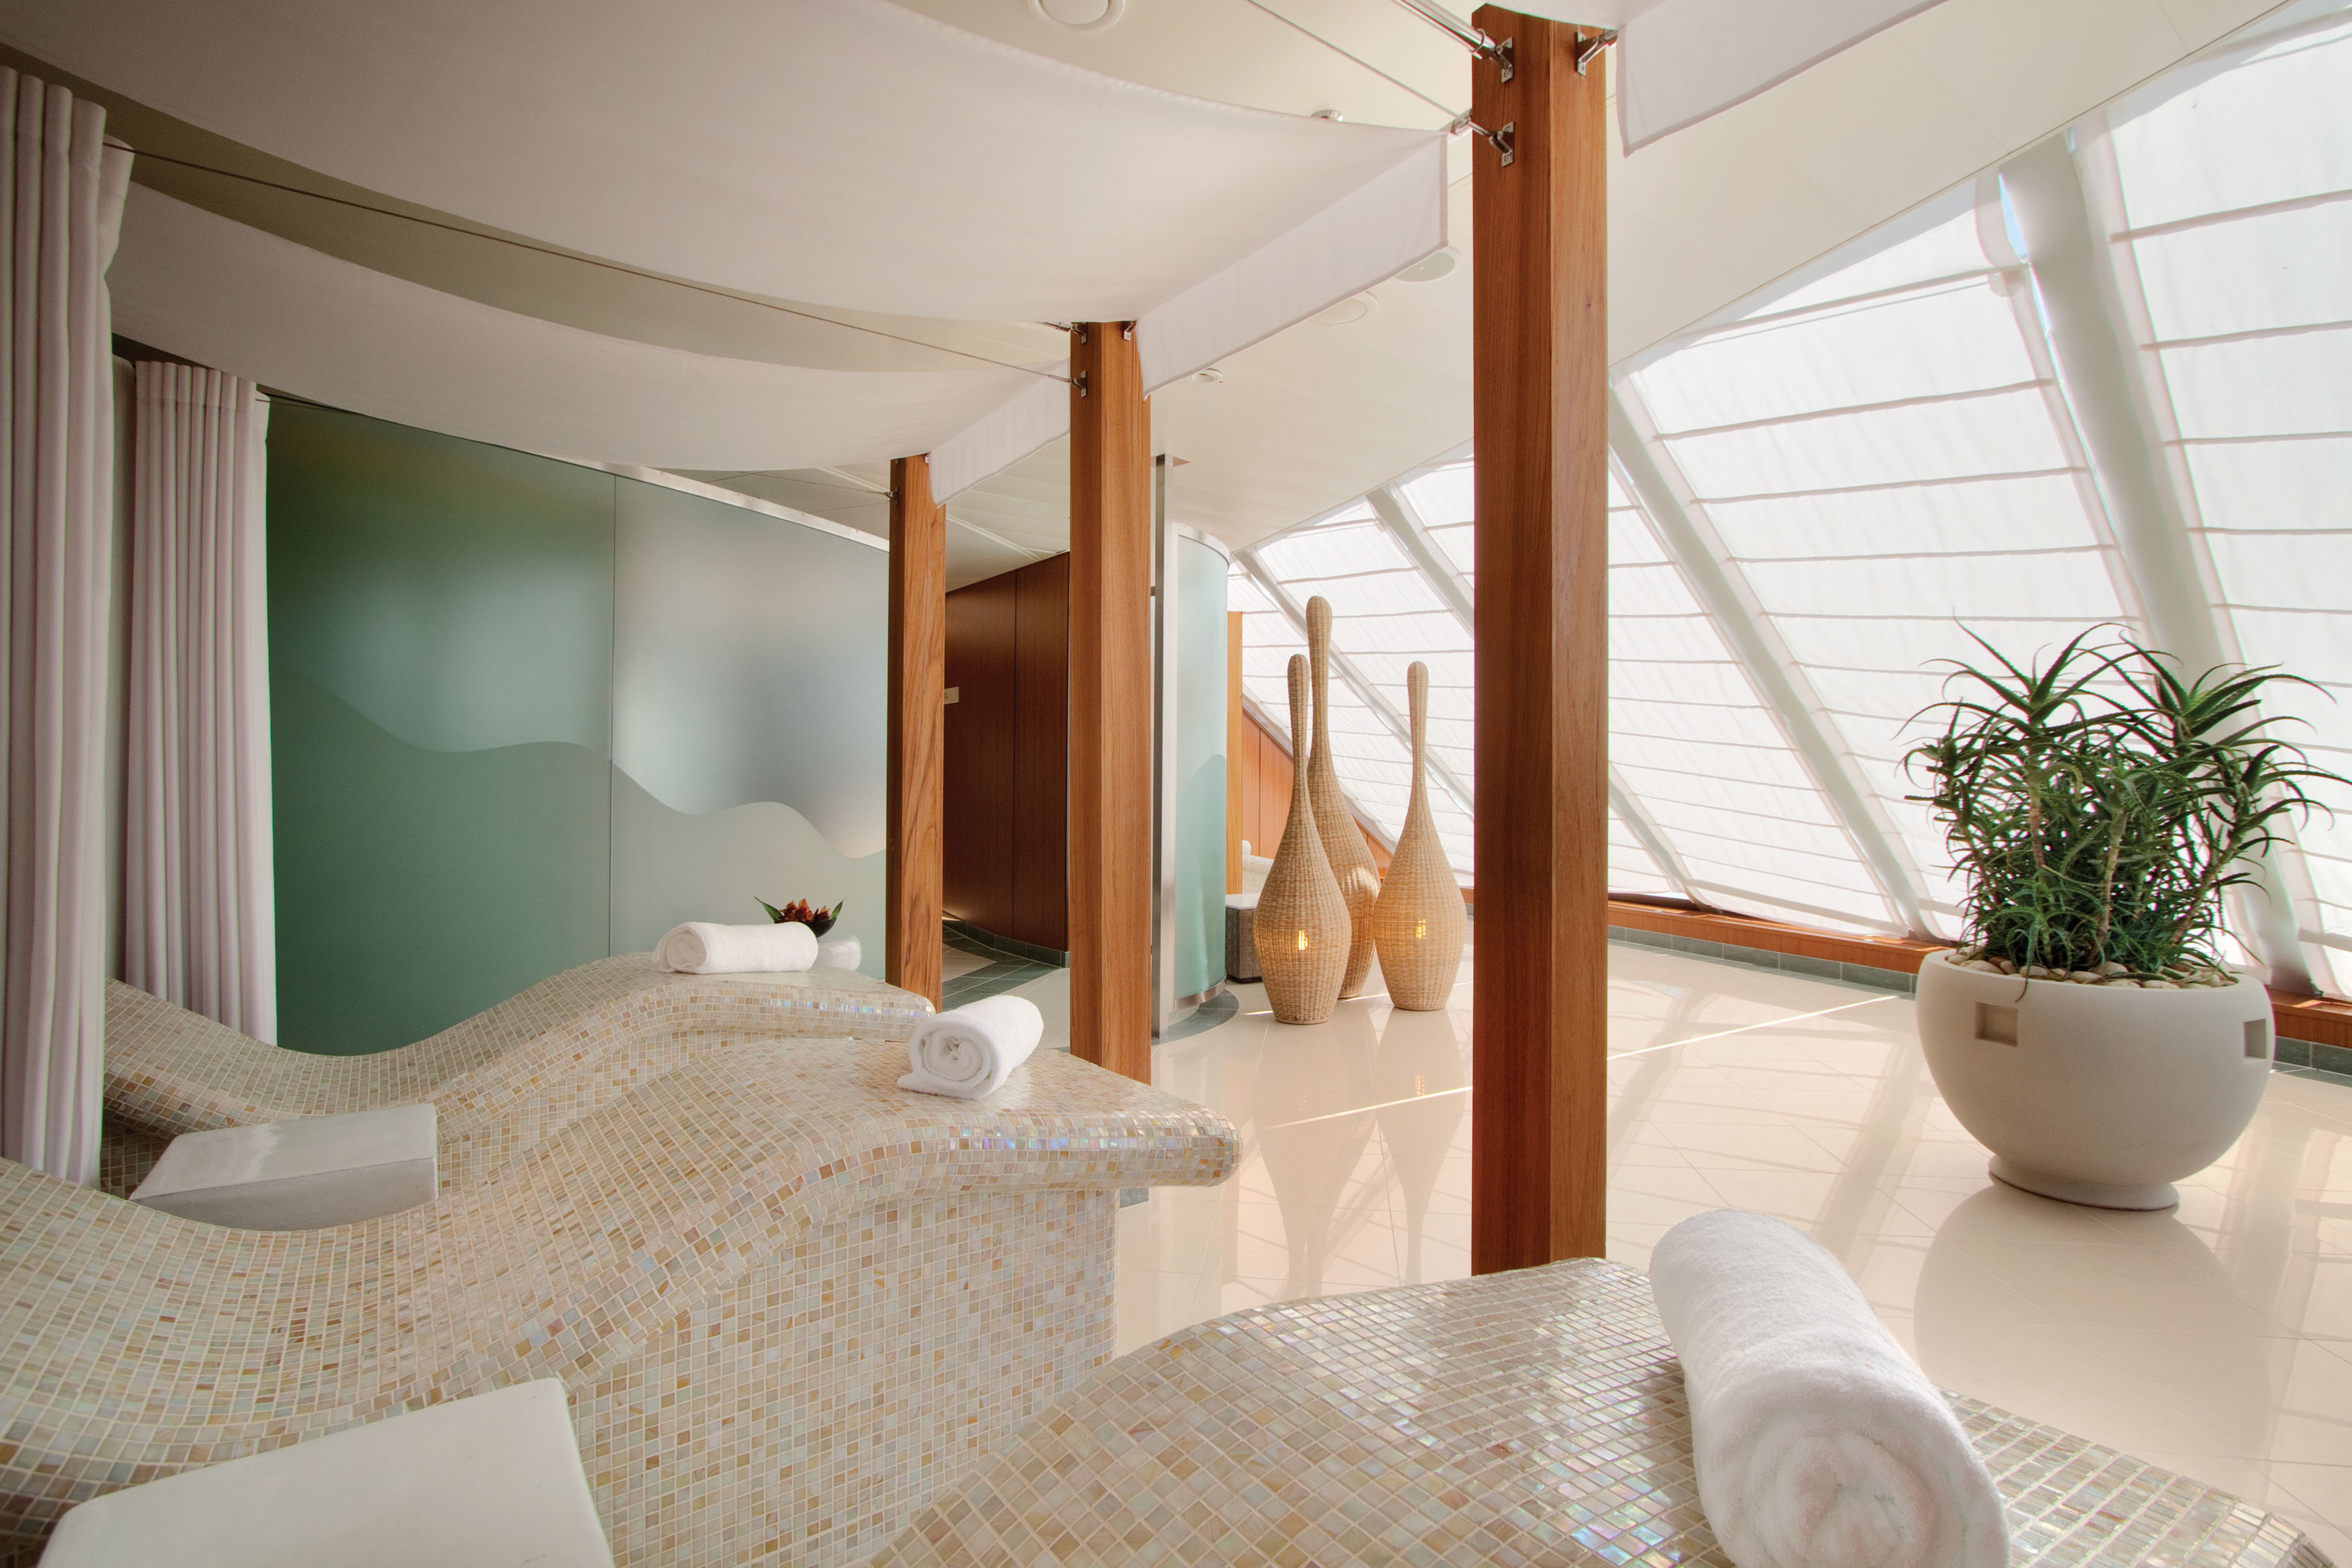 Oceania Cruises Oceania Class Interior Spa Relaxation.jpg